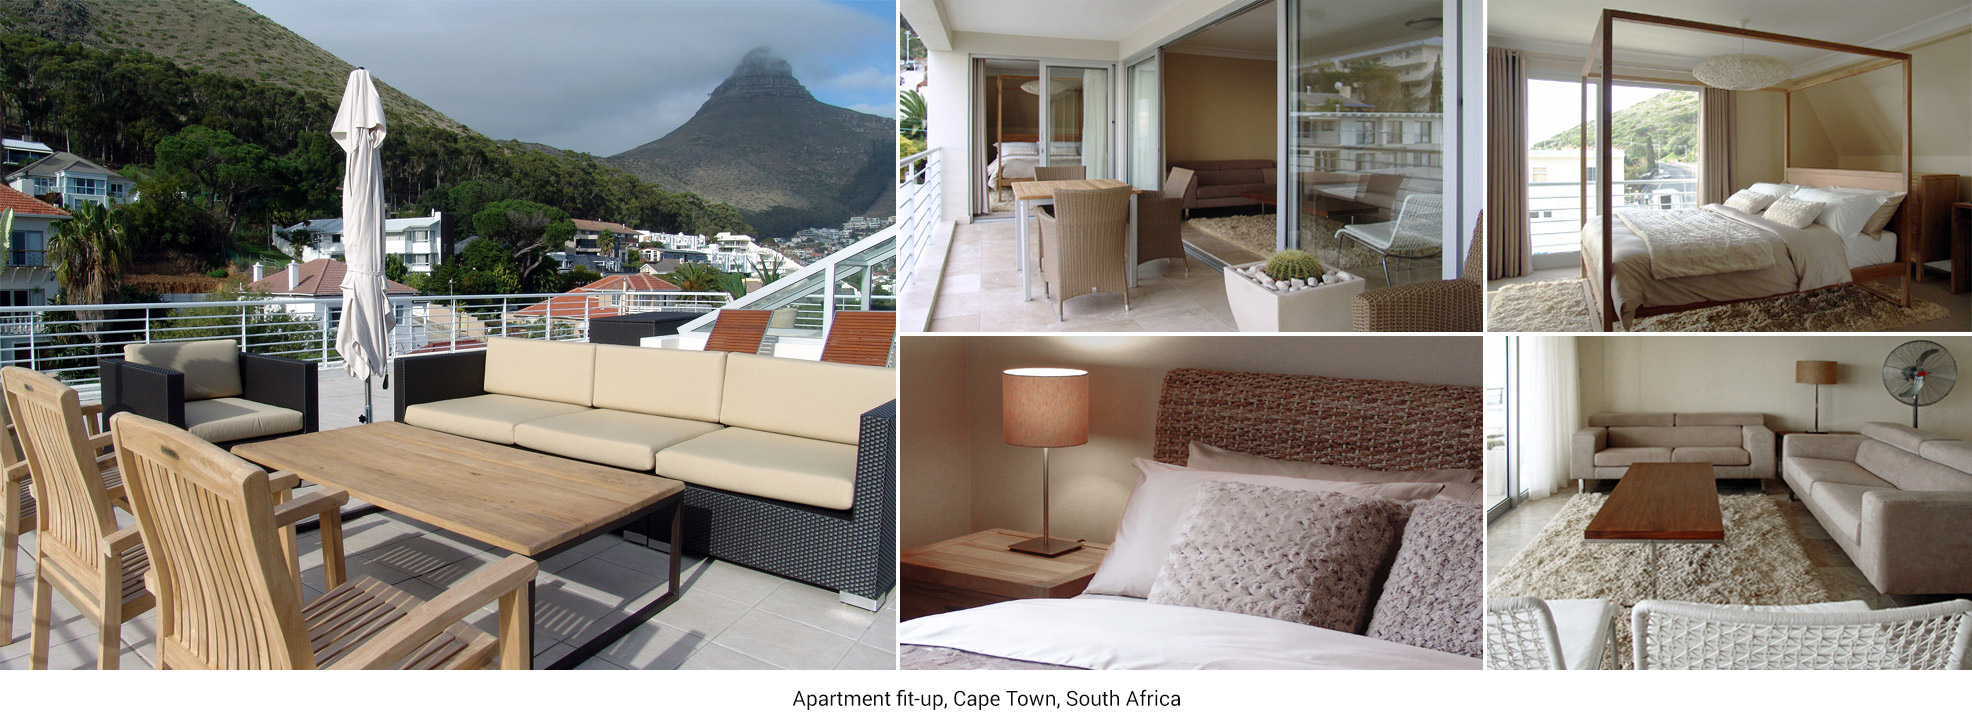 Apartment fit up Cape Town South Africa